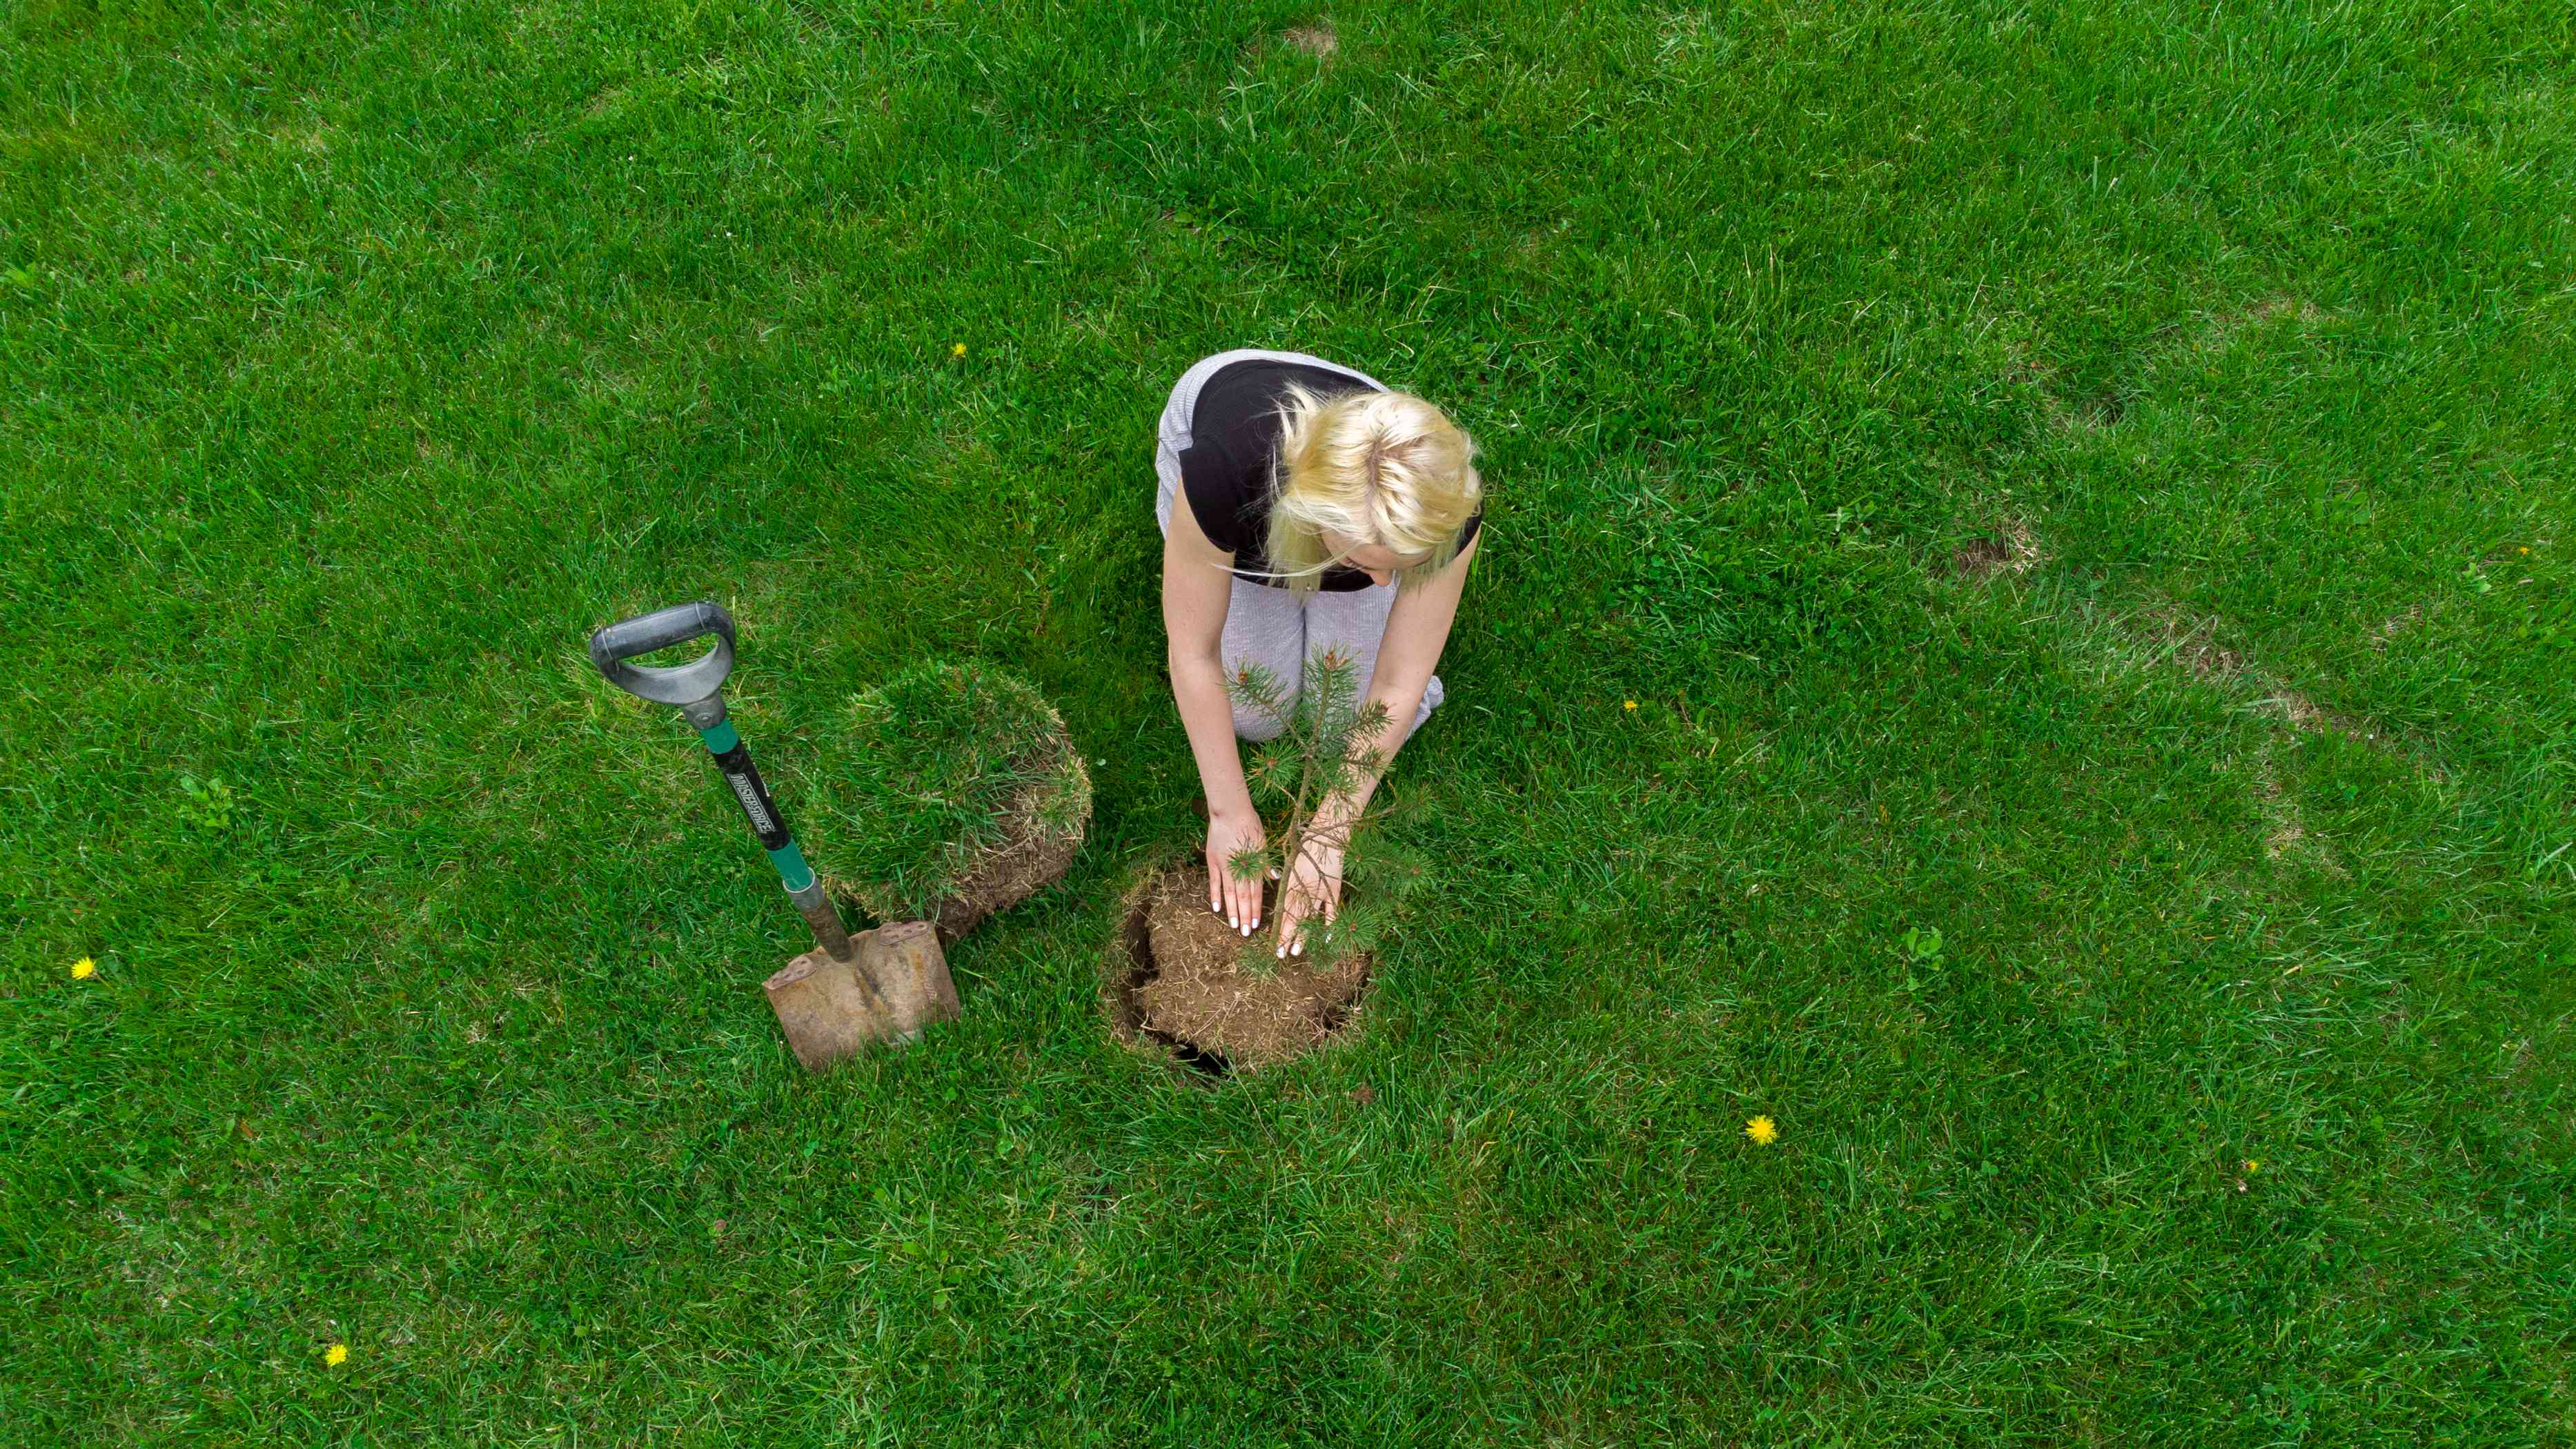 overhead shot of blonde woman planting small tree seedling in middle of green lawn